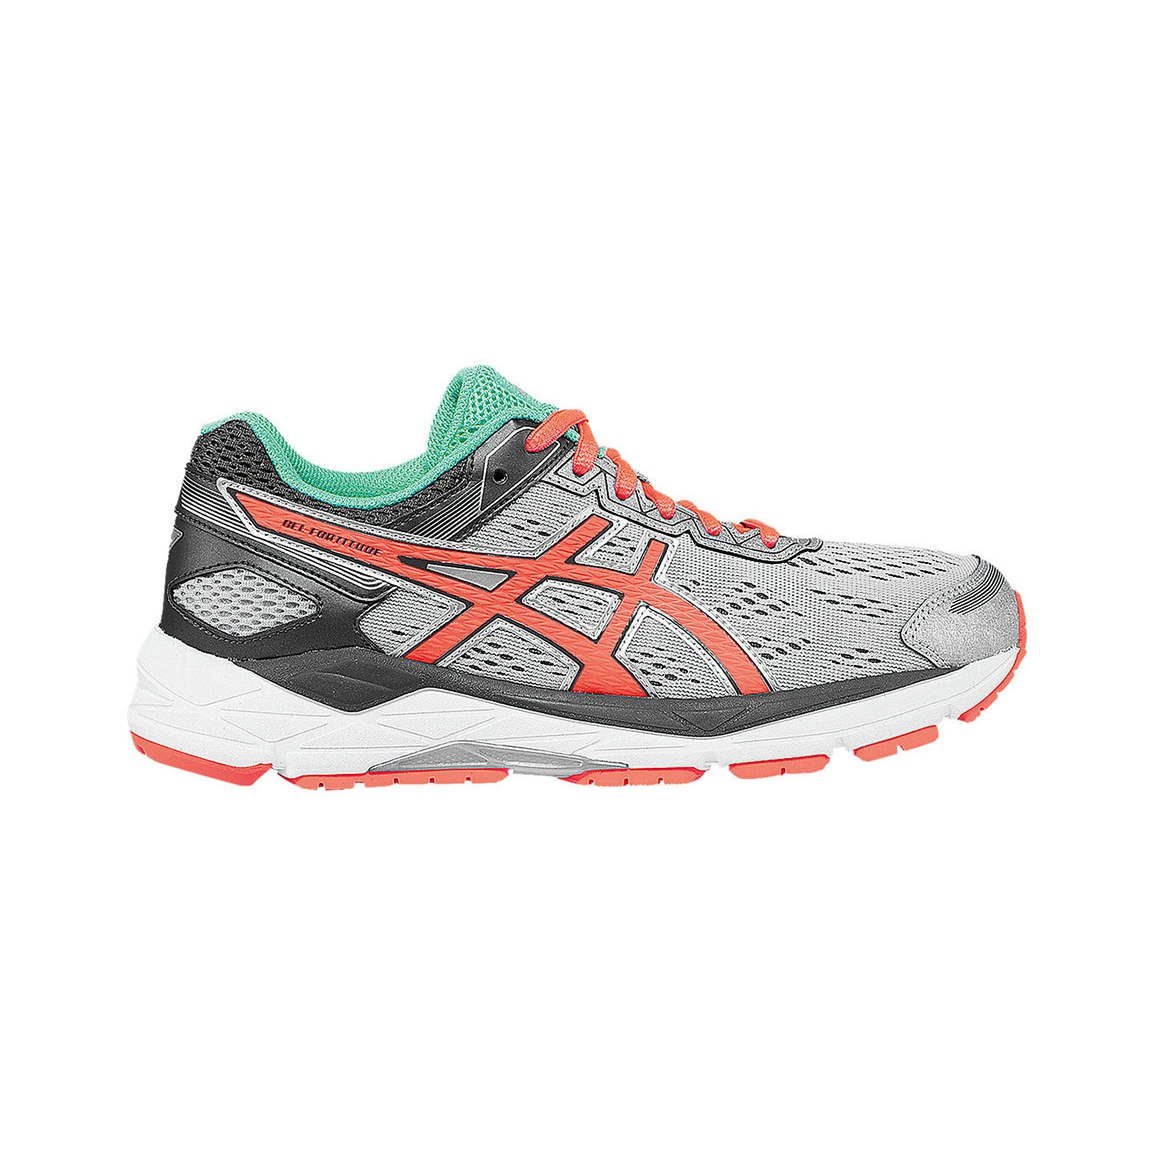 Asics Women's ASICS GEL-Fortitude 7 Running Shoes - Color: Silver/Fier.